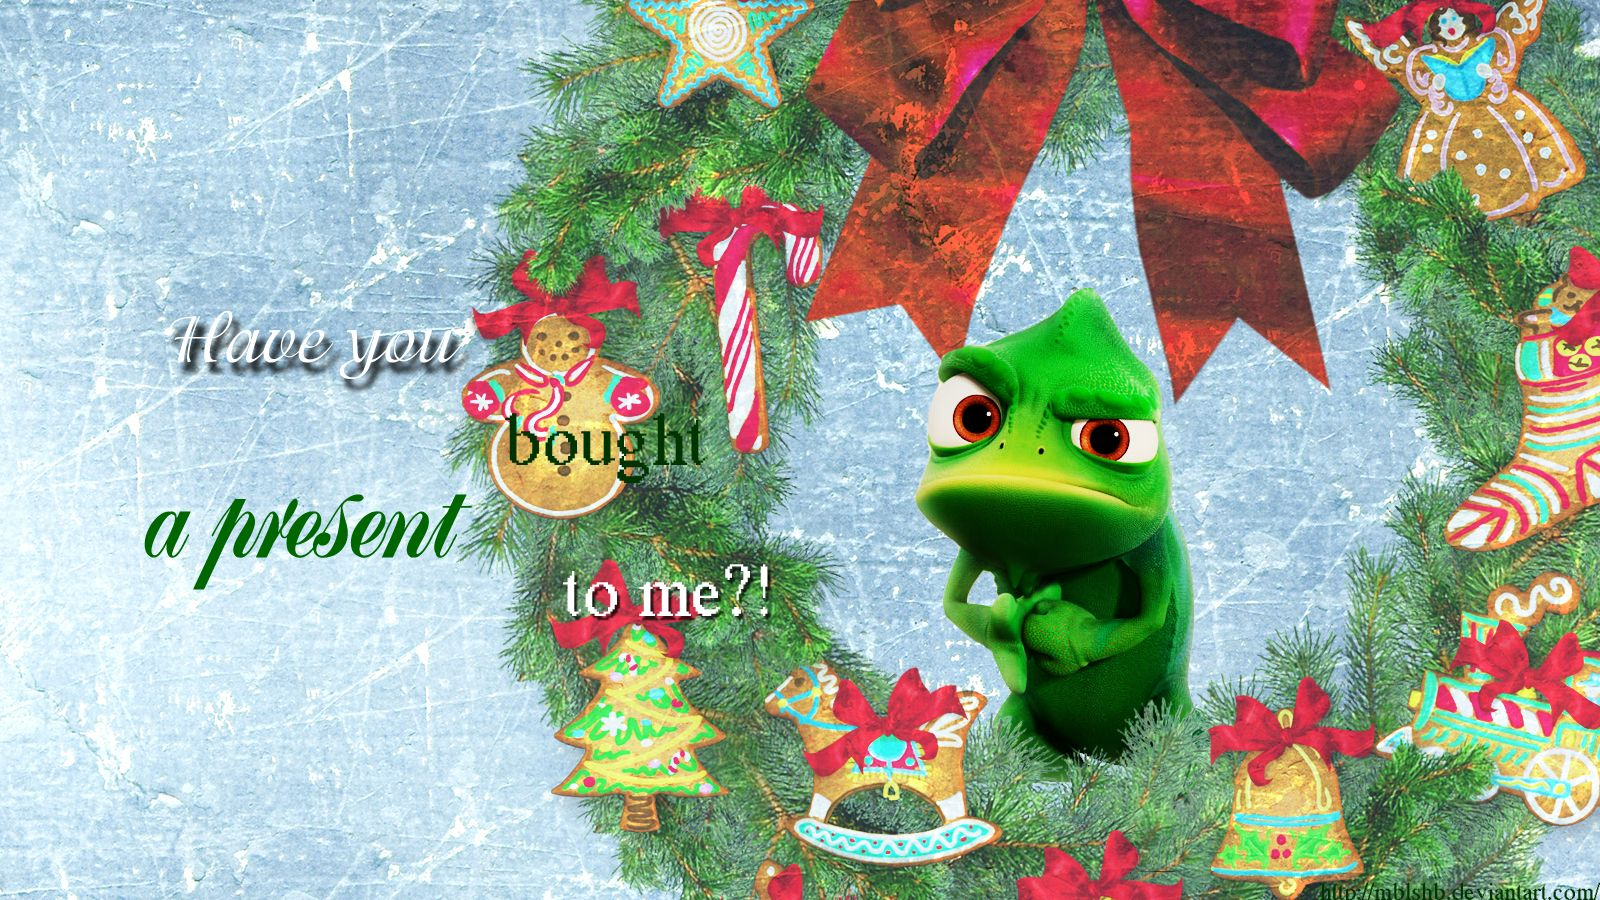 disney christmas wallpaper merry christmas with pascal wallpapers for disney tangled wallpaper